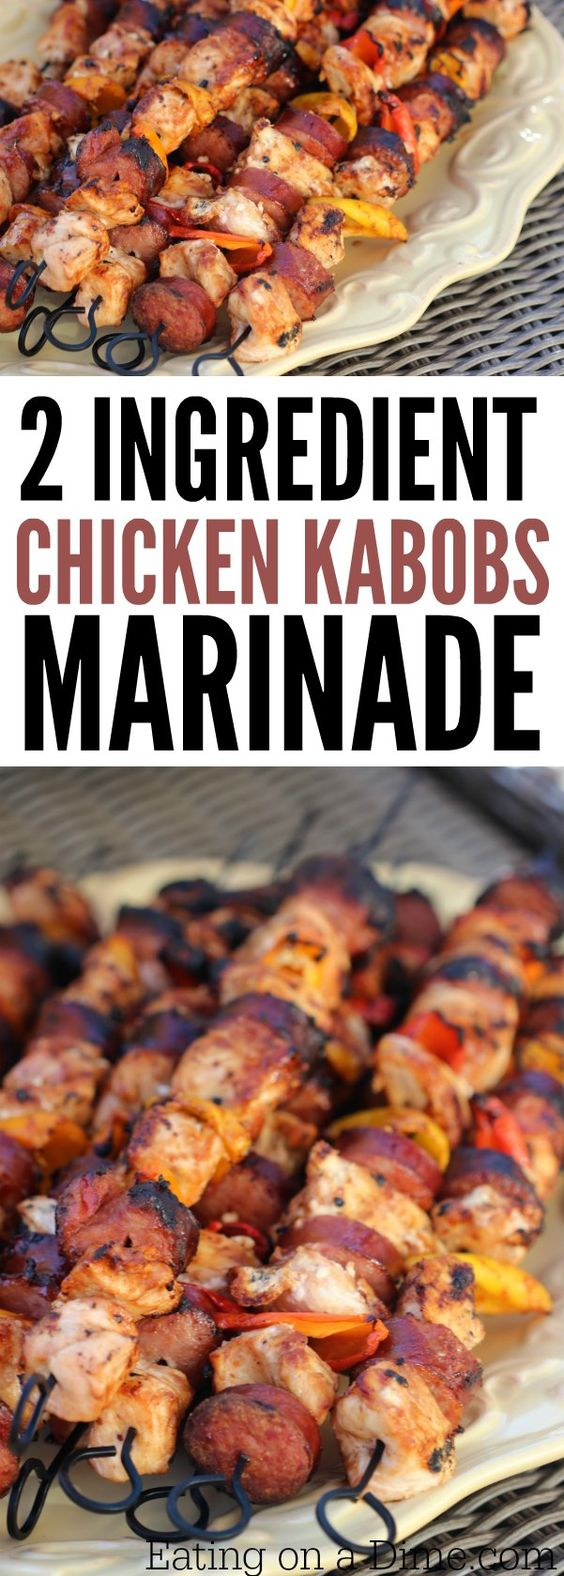 EASY GRILLED CHICKEN KABOB RECIPE